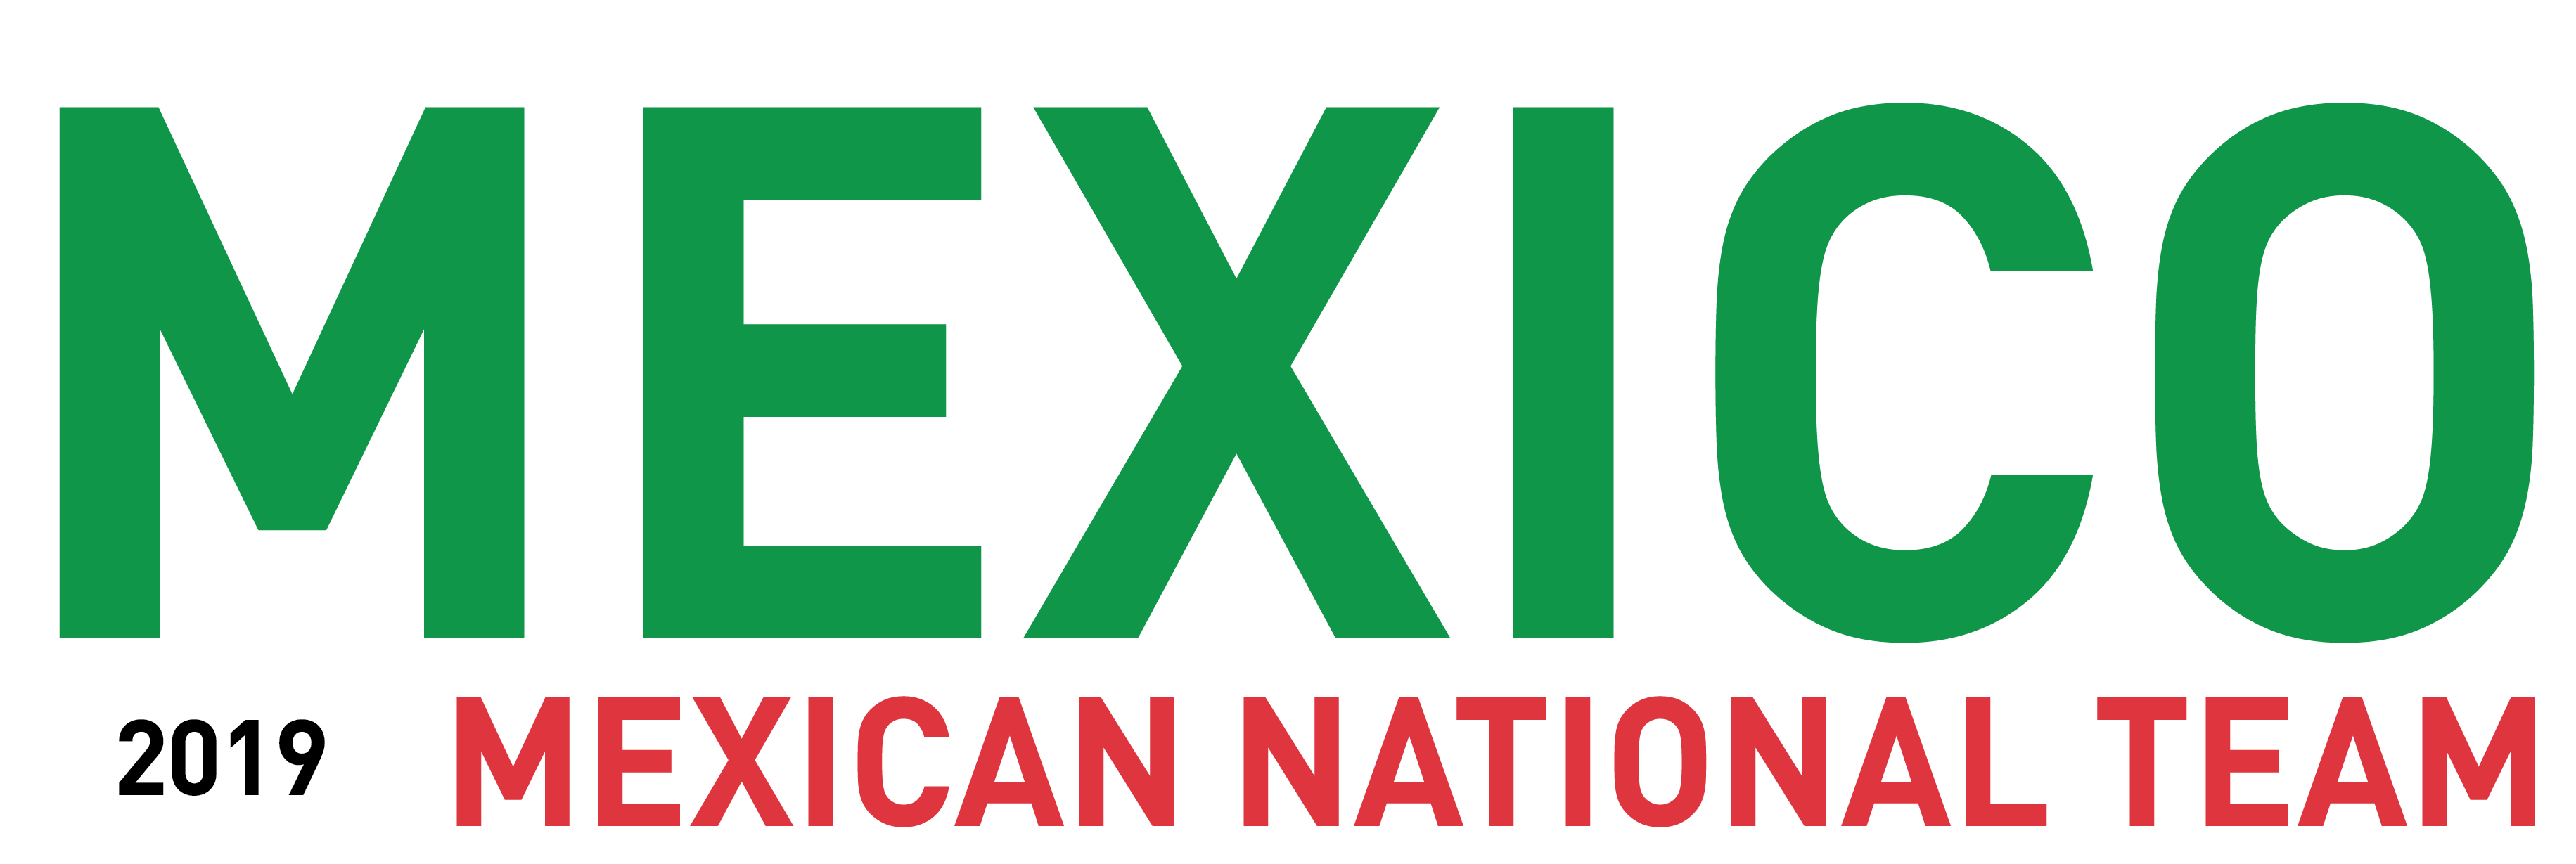 The Mexican National Team 2019 U.S. Tour